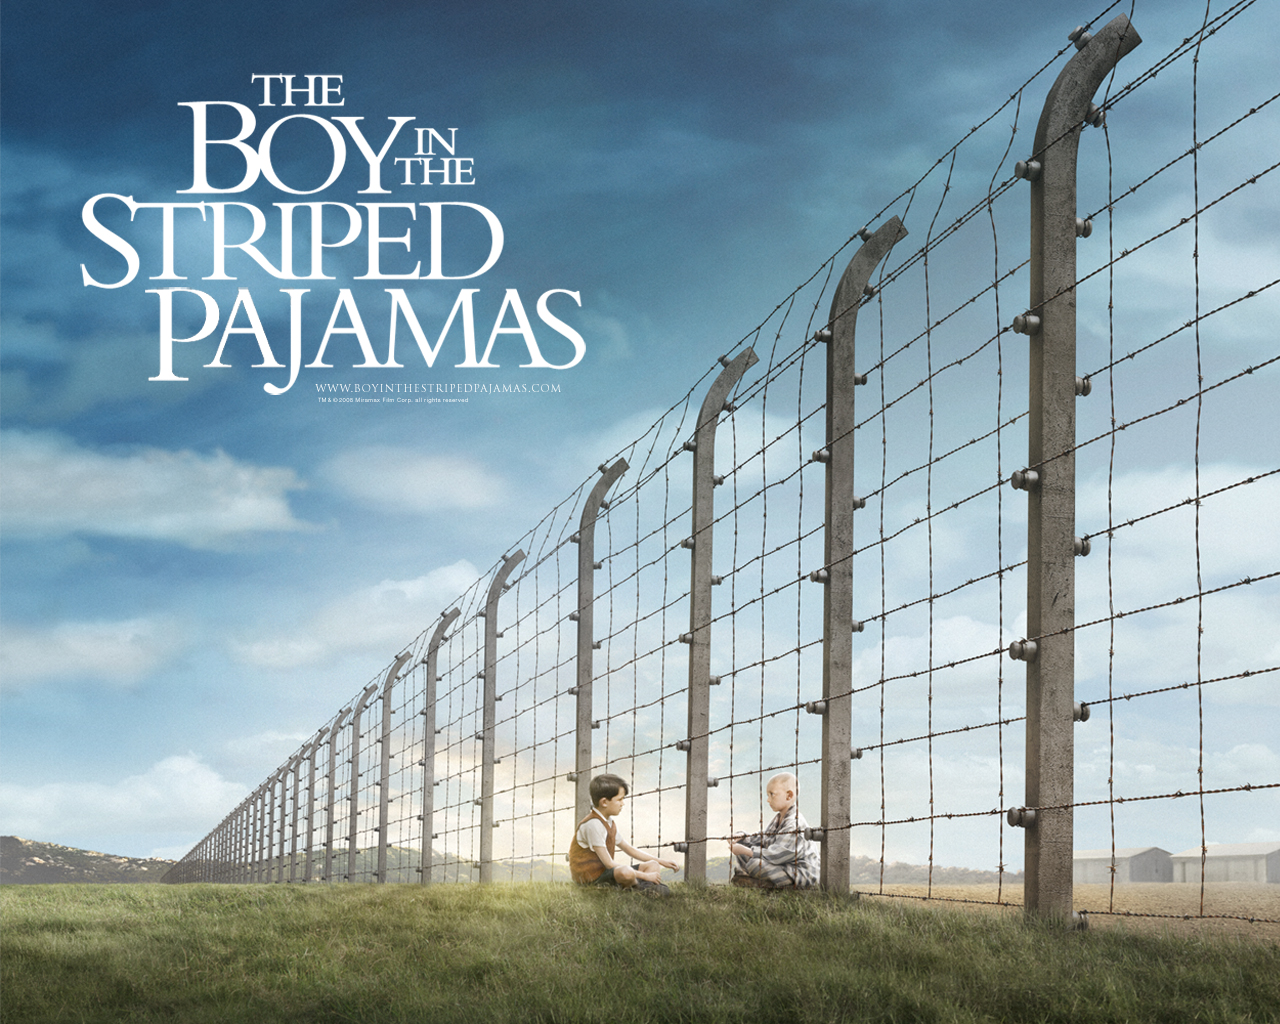 http://1.bp.blogspot.com/-dy51RfKIoT0/TbhG73BsM6I/AAAAAAAAABE/x_HsHRbyot4/s1600/Asa_Butterfield_in_The_Boy_in_the_Striped_Pyjamas_Wallpaper_1_800.jpg